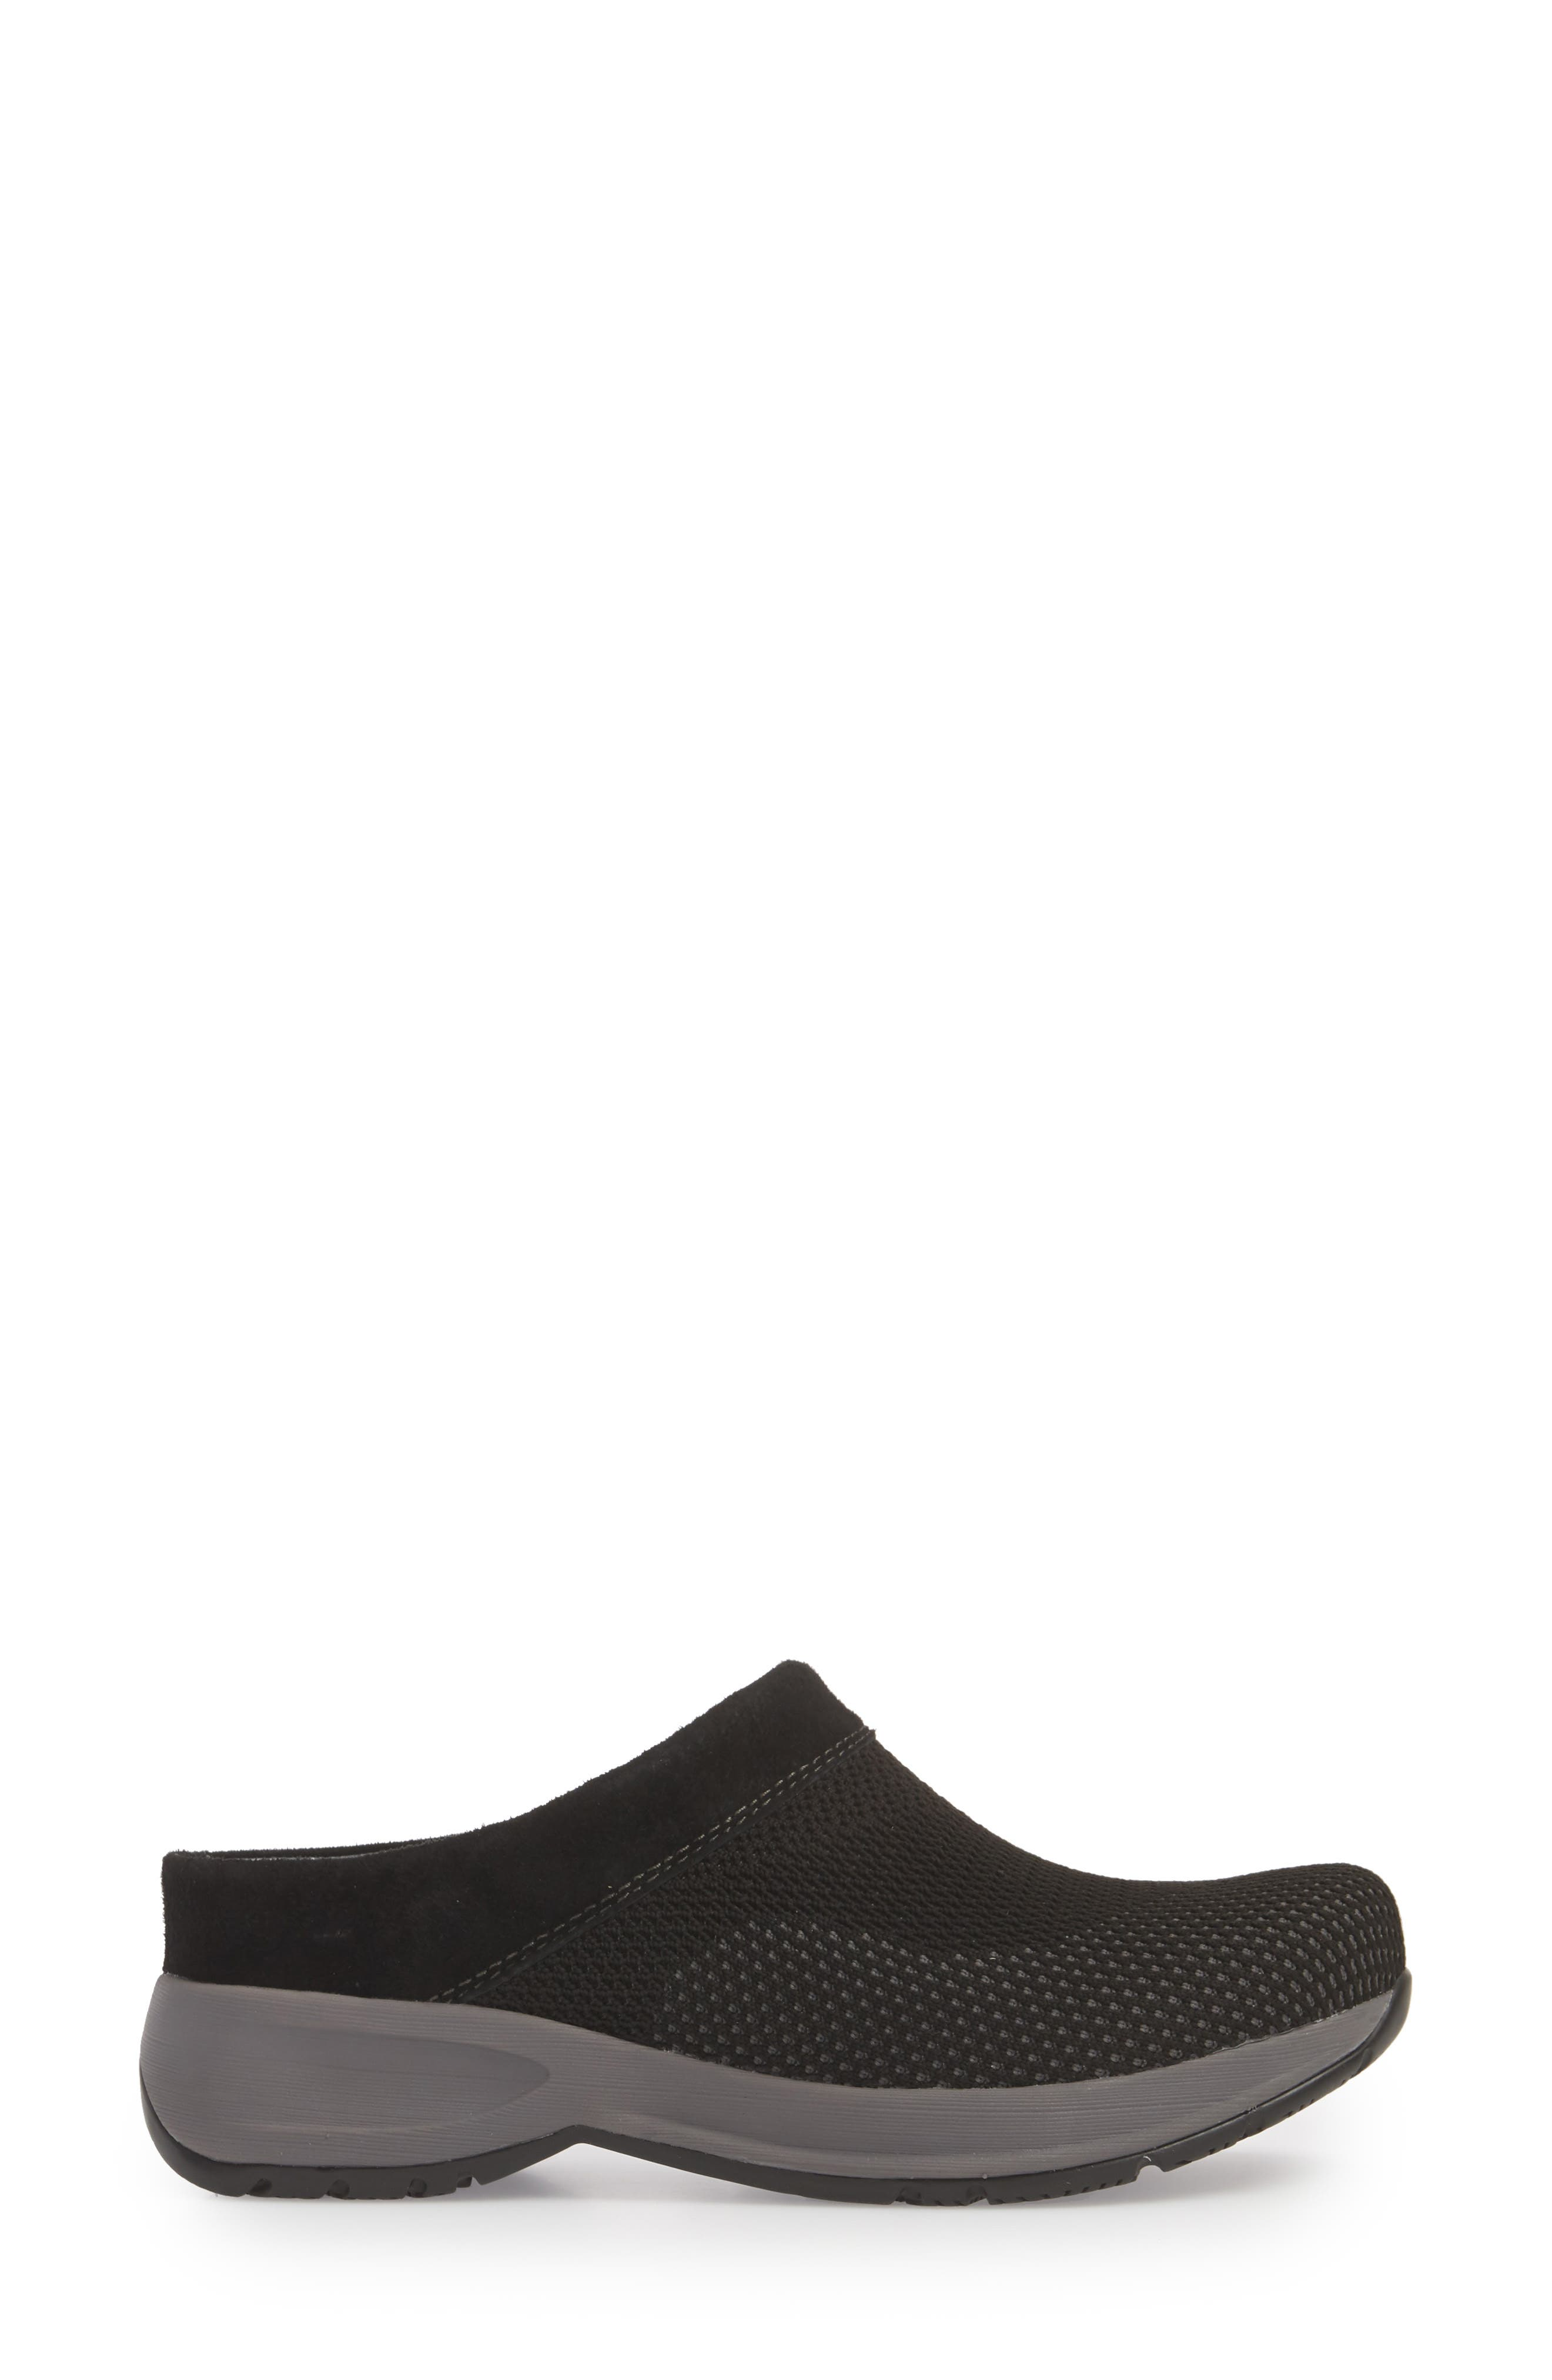 Sondra Clog,                             Alternate thumbnail 6, color,                             Black Suede